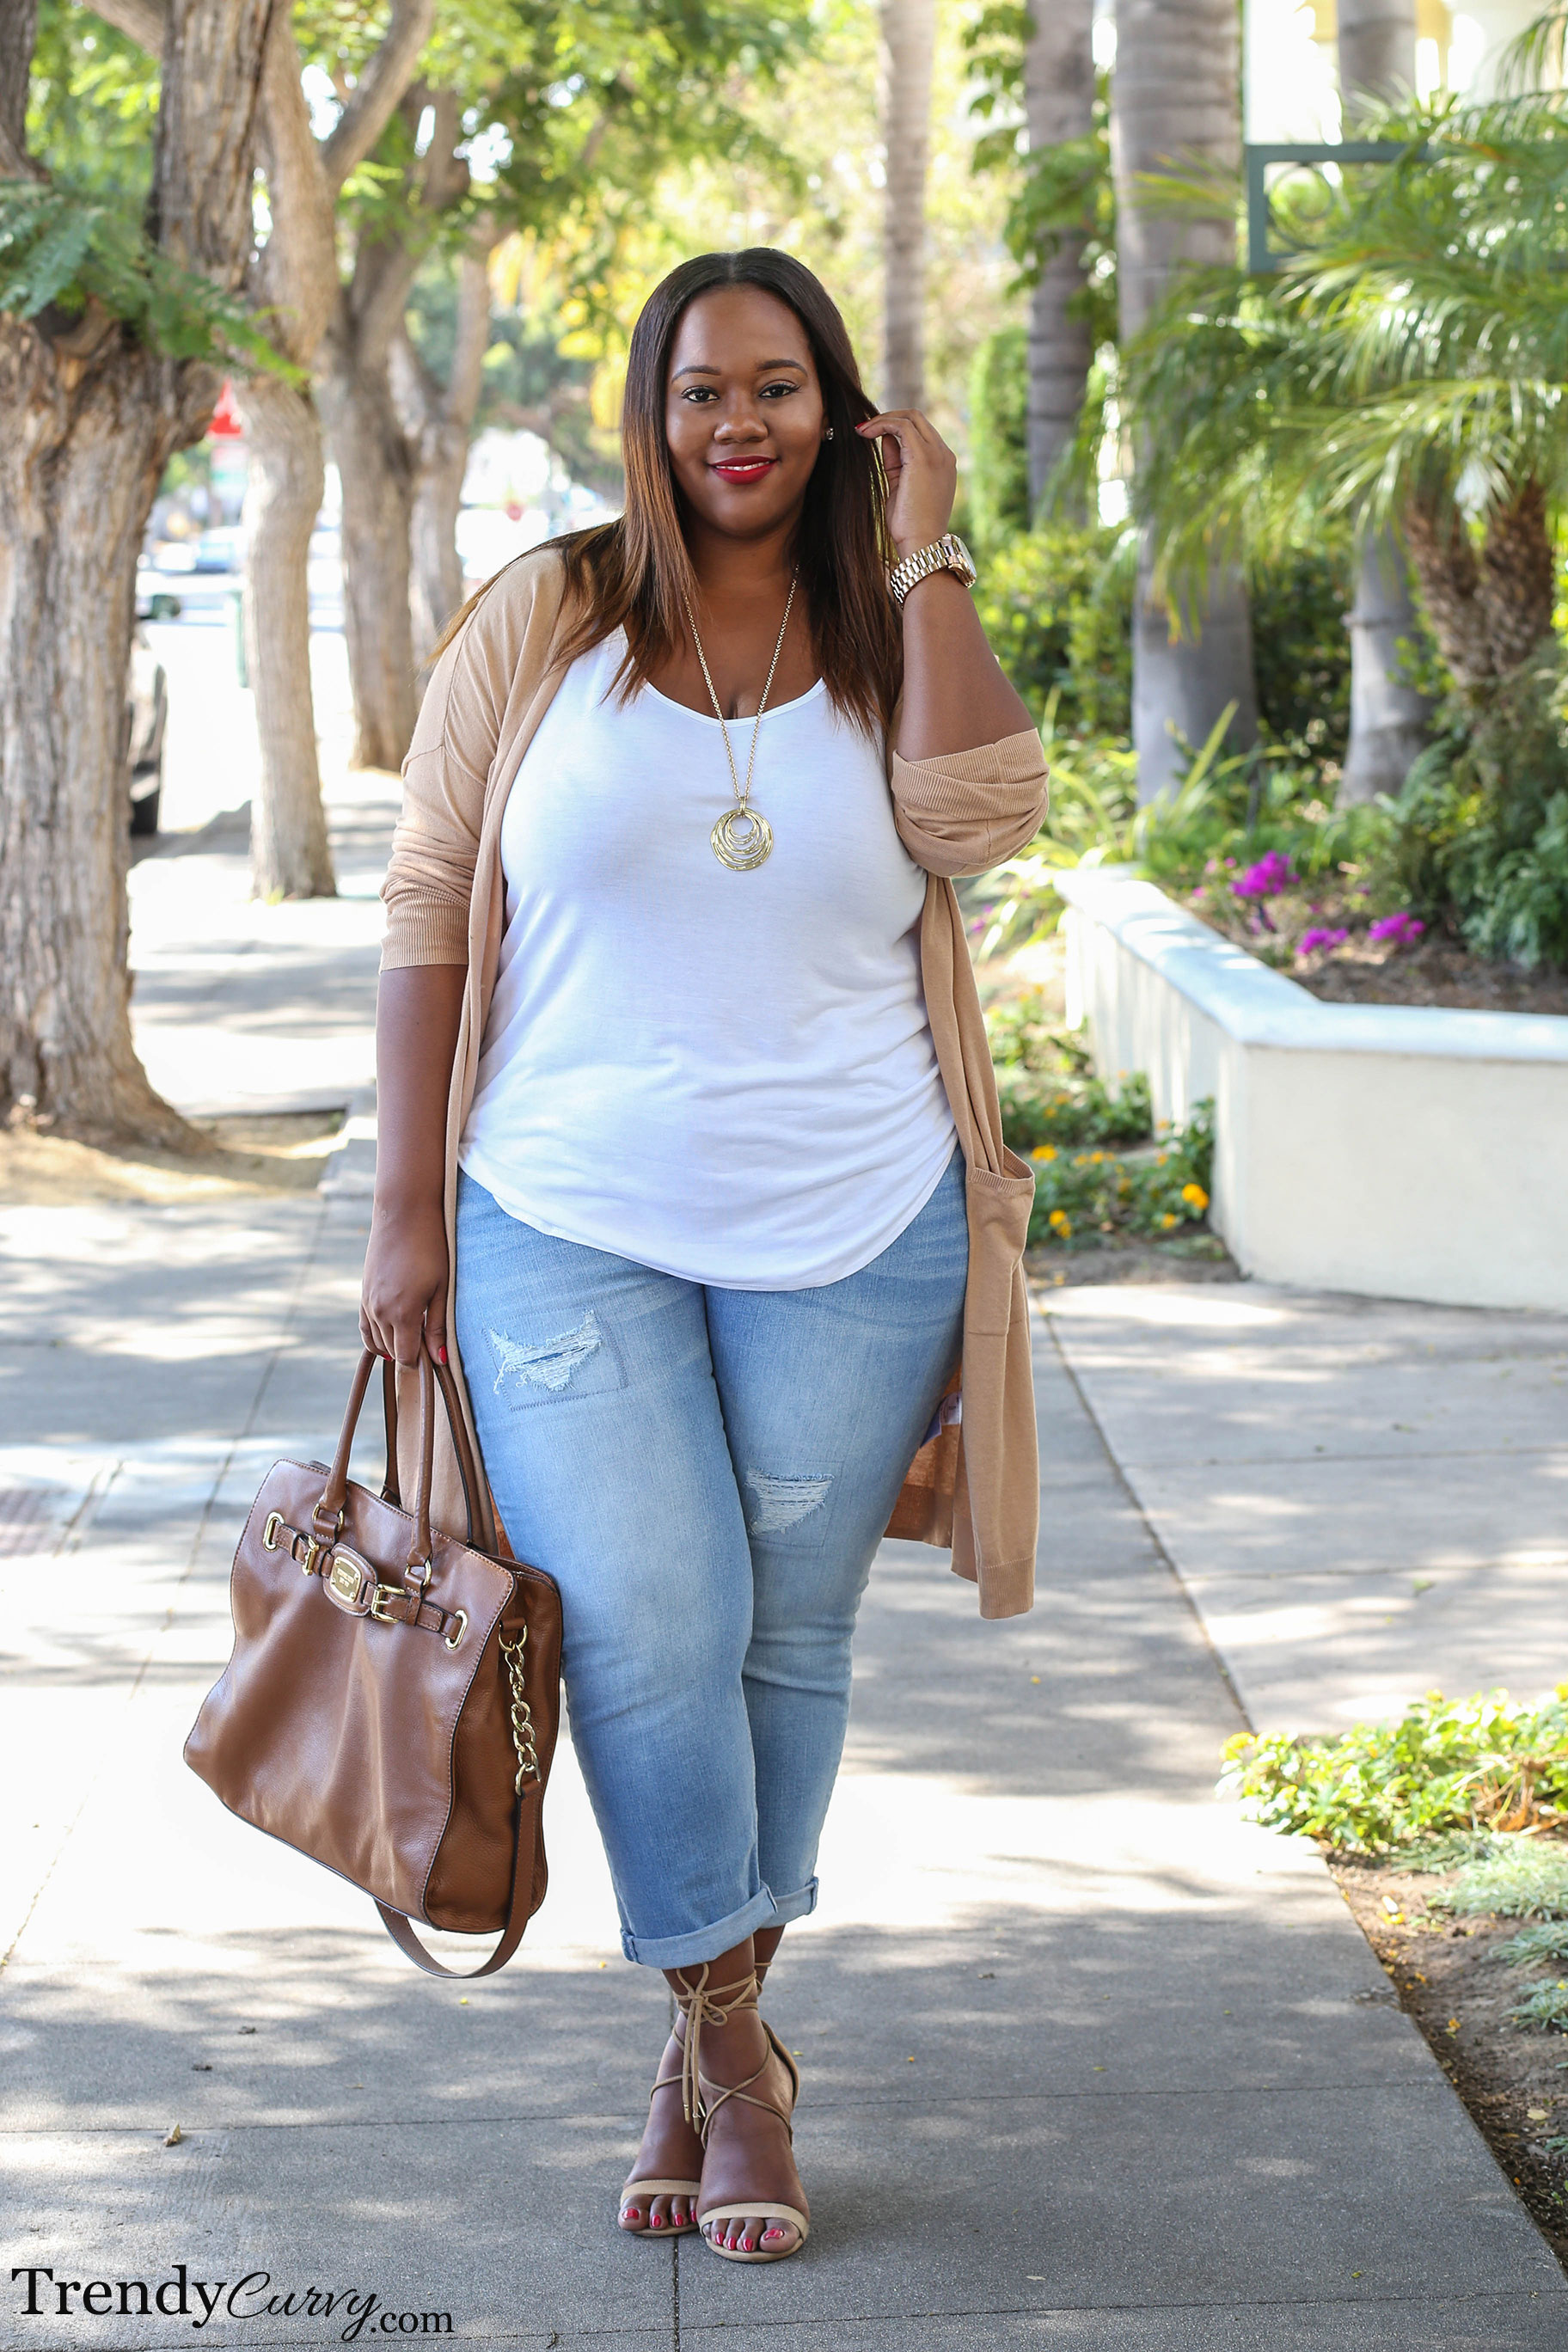 trendy curvy - page 23 of 52 - plus size fashion blogtrendy curvy